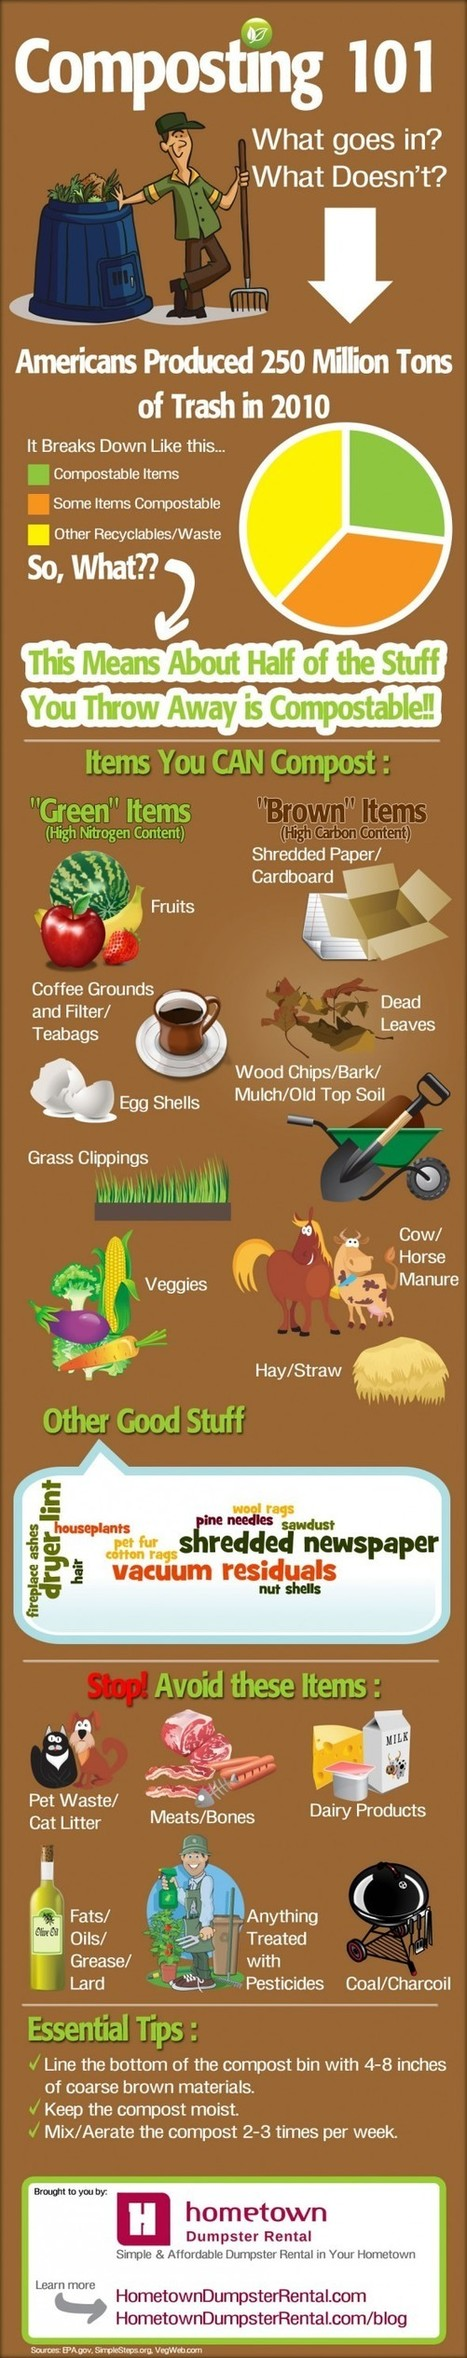 Infographic: Composting 101 -- What's in, What's out? | Education for Sustainable Development | Scoop.it